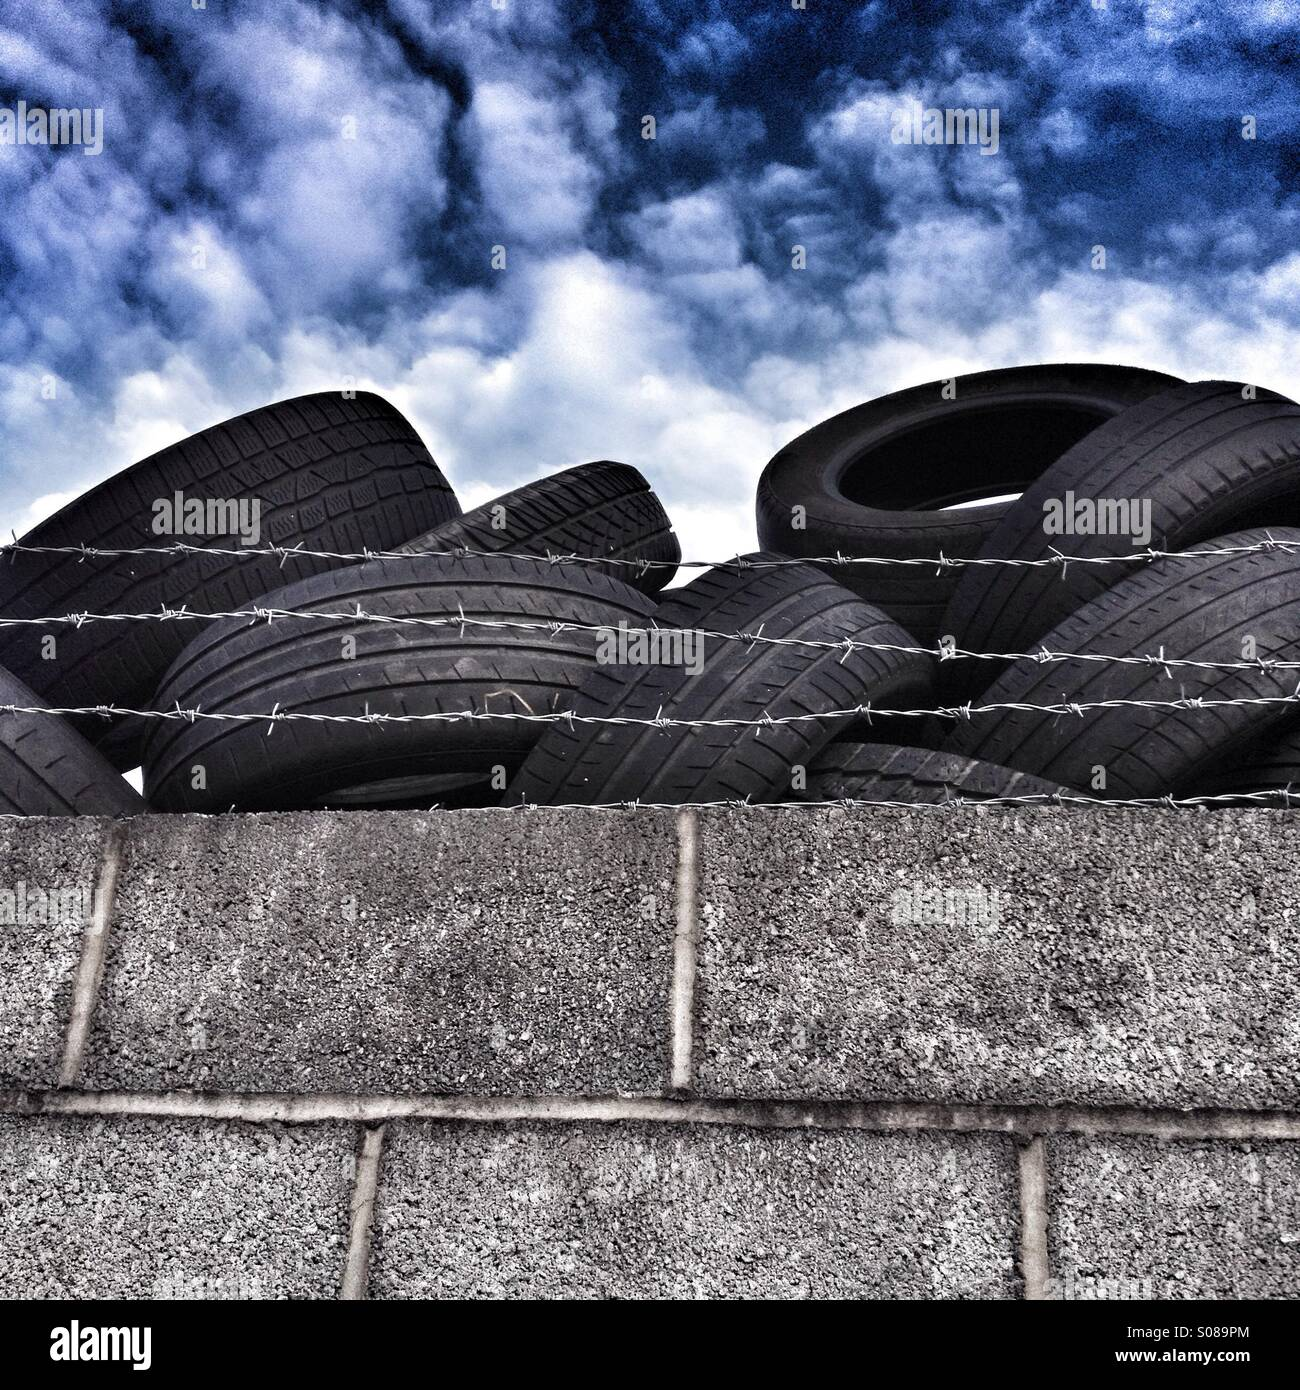 Old motor vehicle tyres behind a wall and barbed wire under a dramatic sky - Stock Image